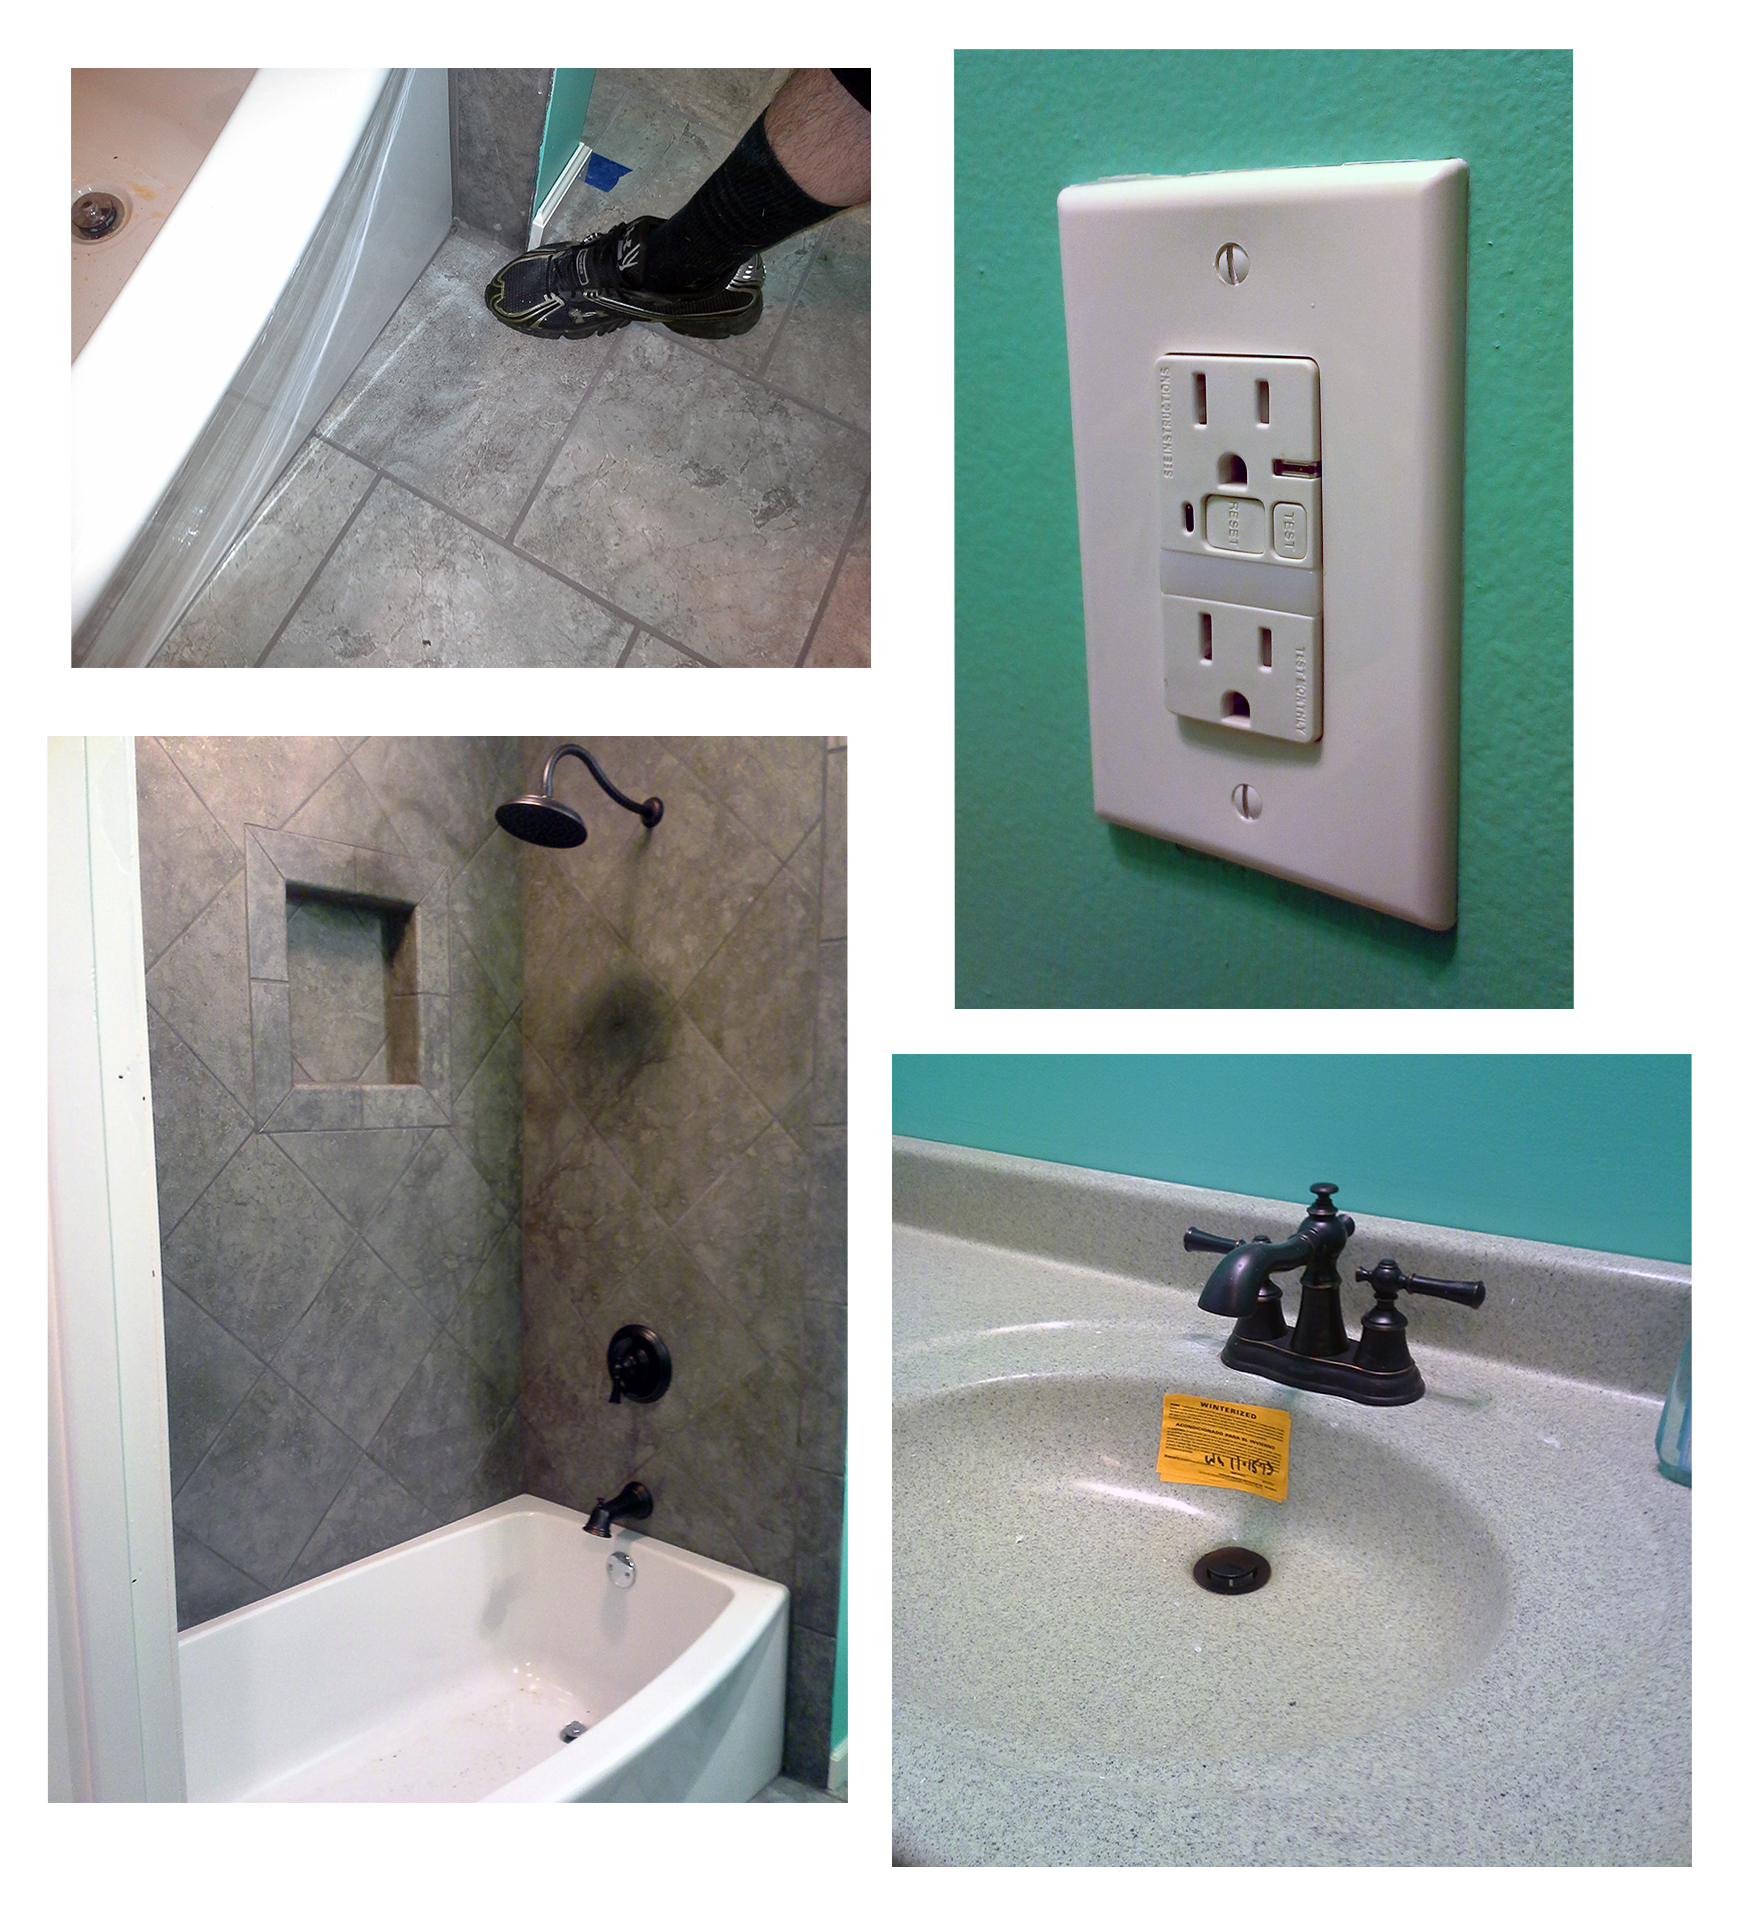 After renovation, the hole next to the tub was fixed, a new shower, tile, and sink fixtures were installed, and energy-efficient GFCI outlets were put in place